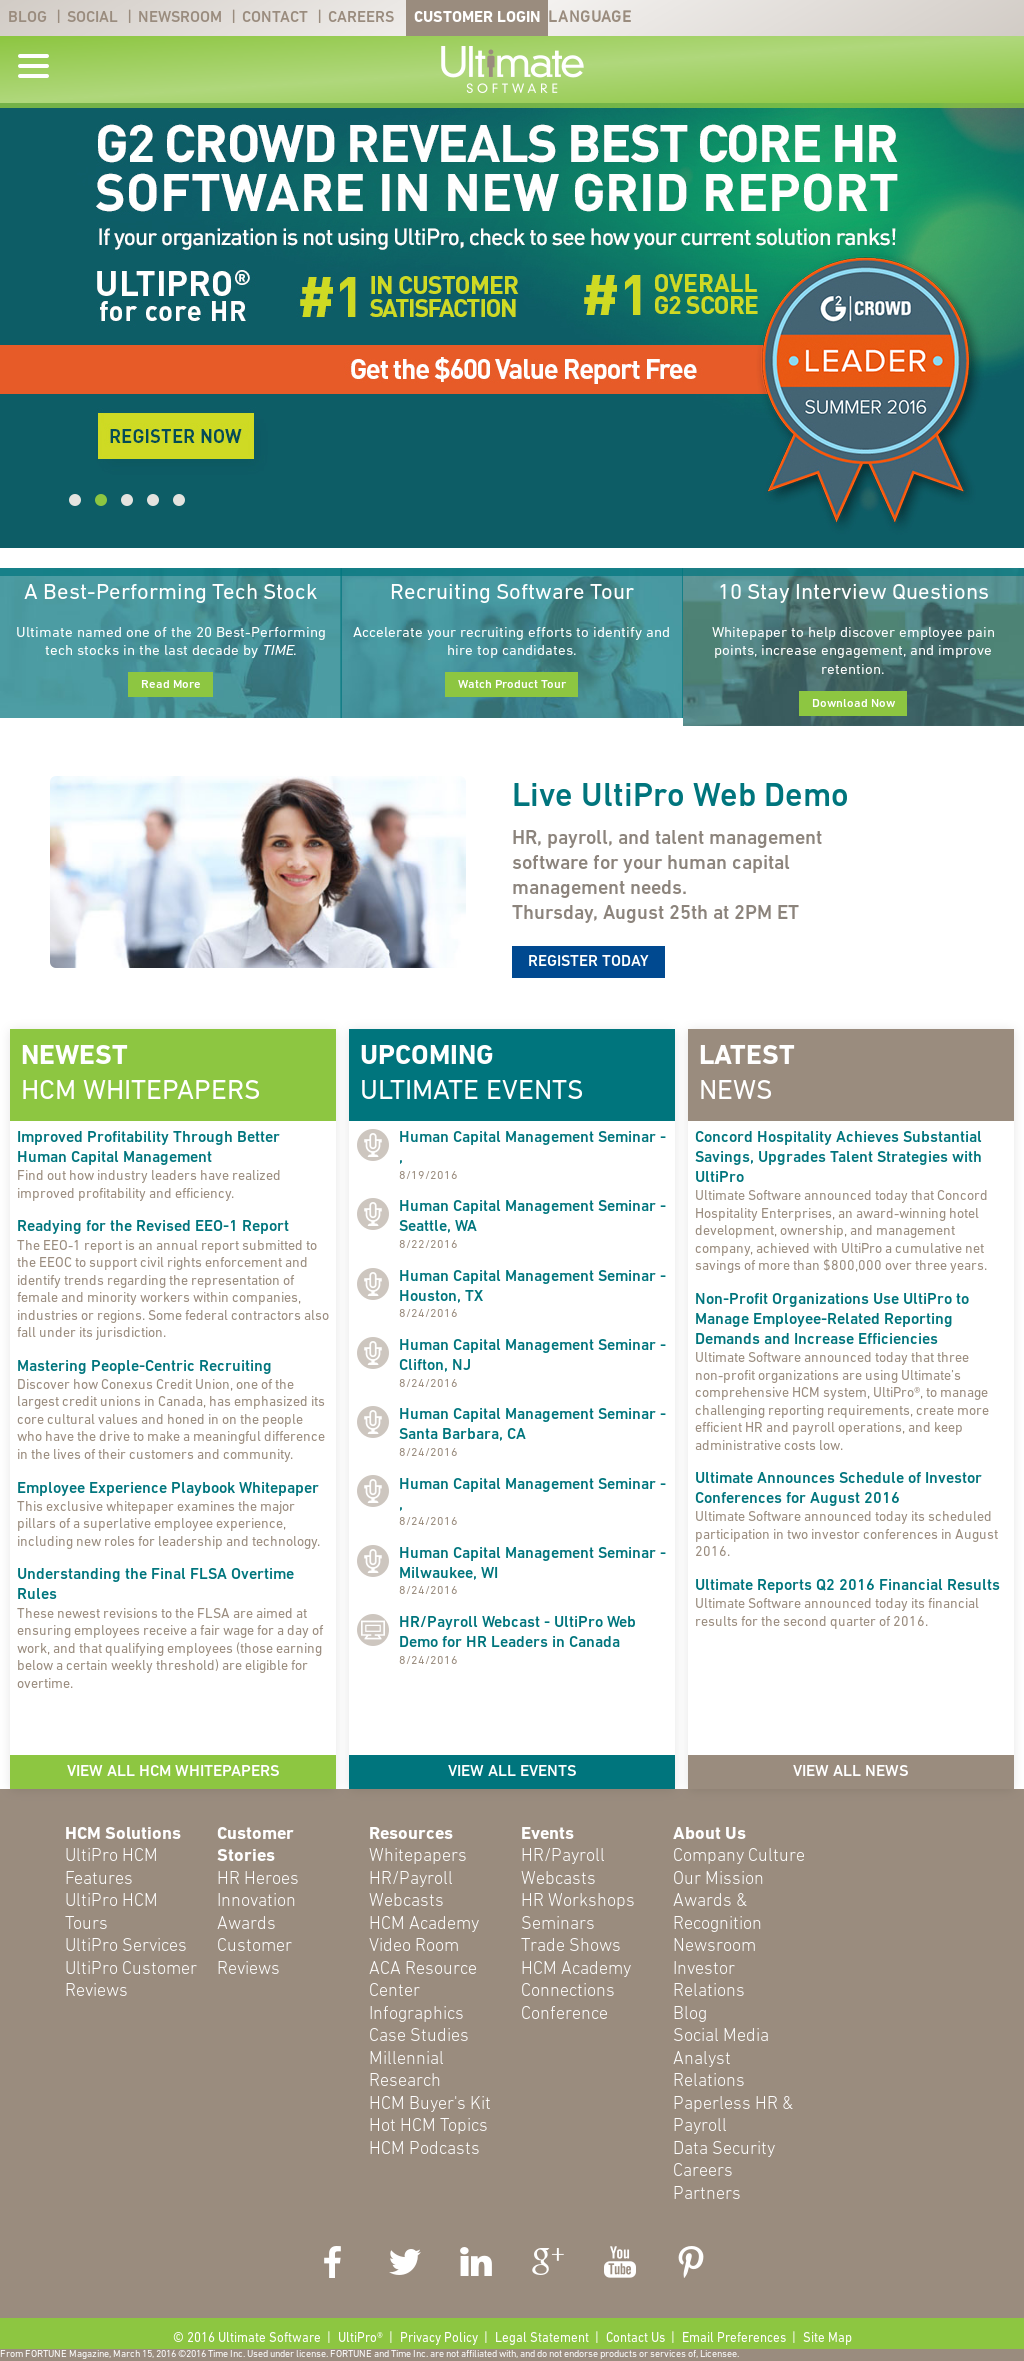 Ultimate Software Competitors, Revenue and Employees - Owler